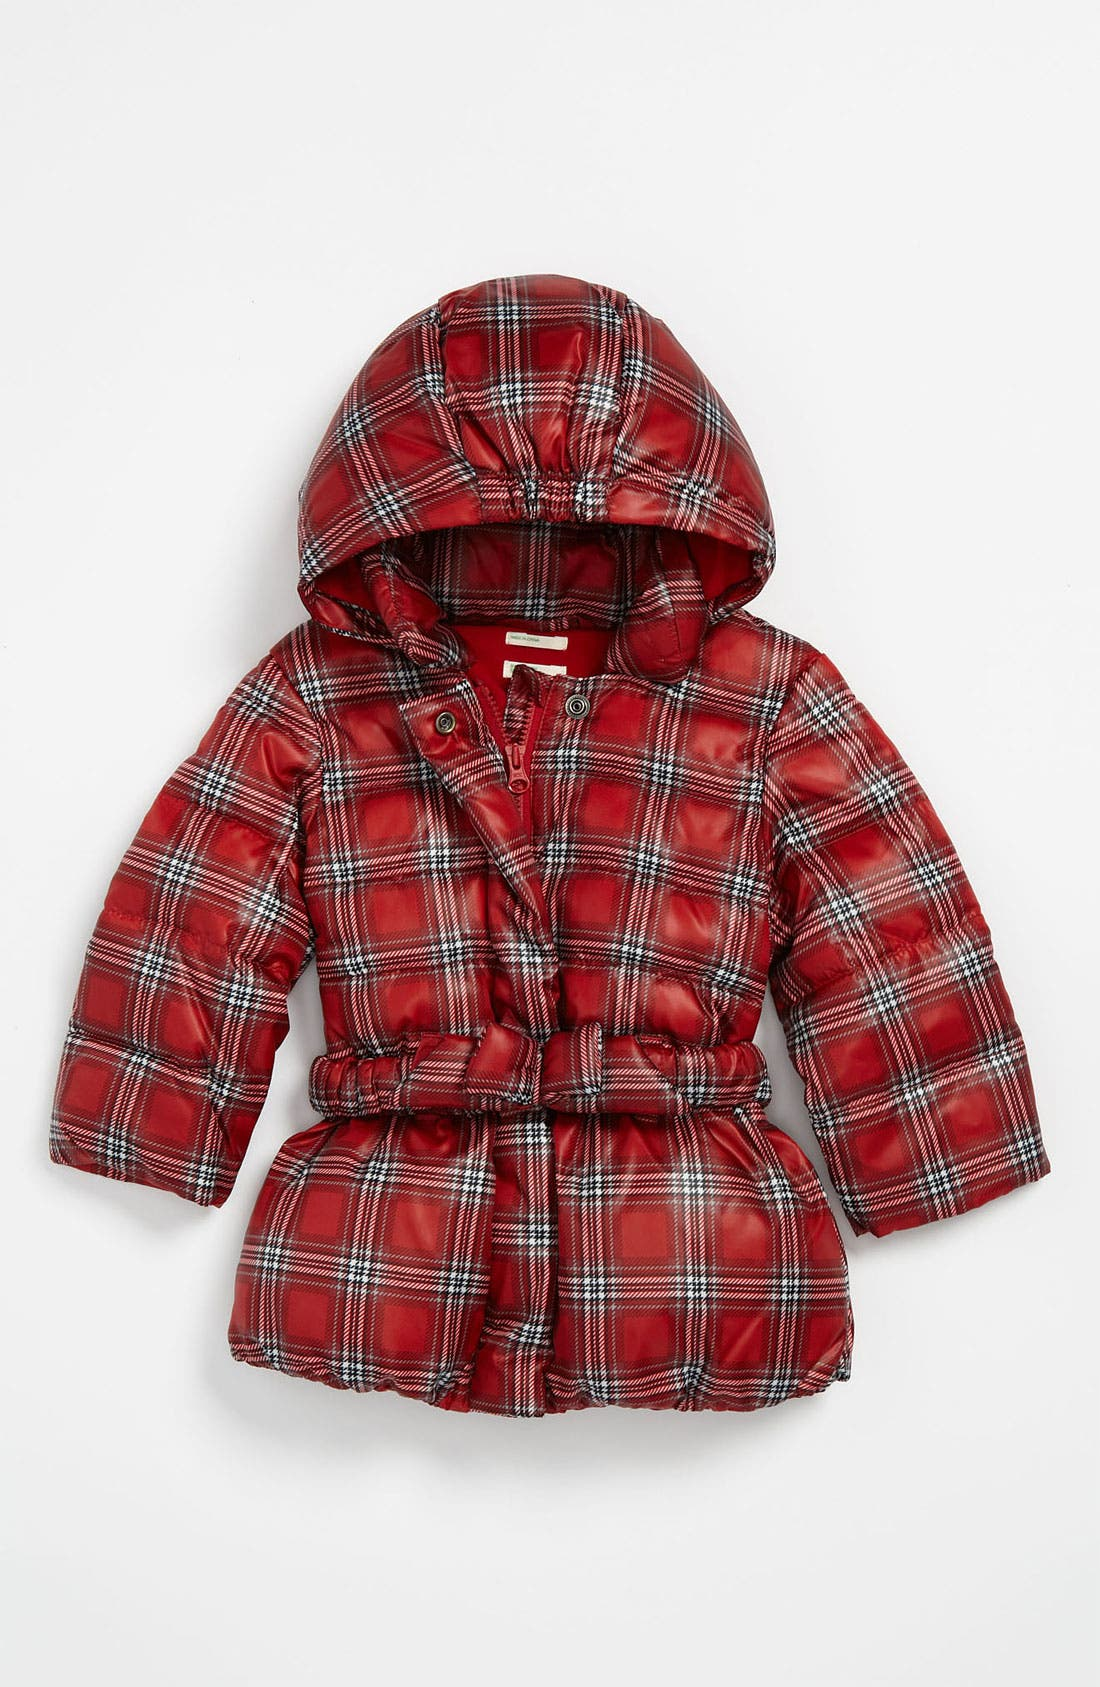 Alternate Image 1 Selected - United Colors of Benetton Kids Plaid Puffer Coat (Infant)